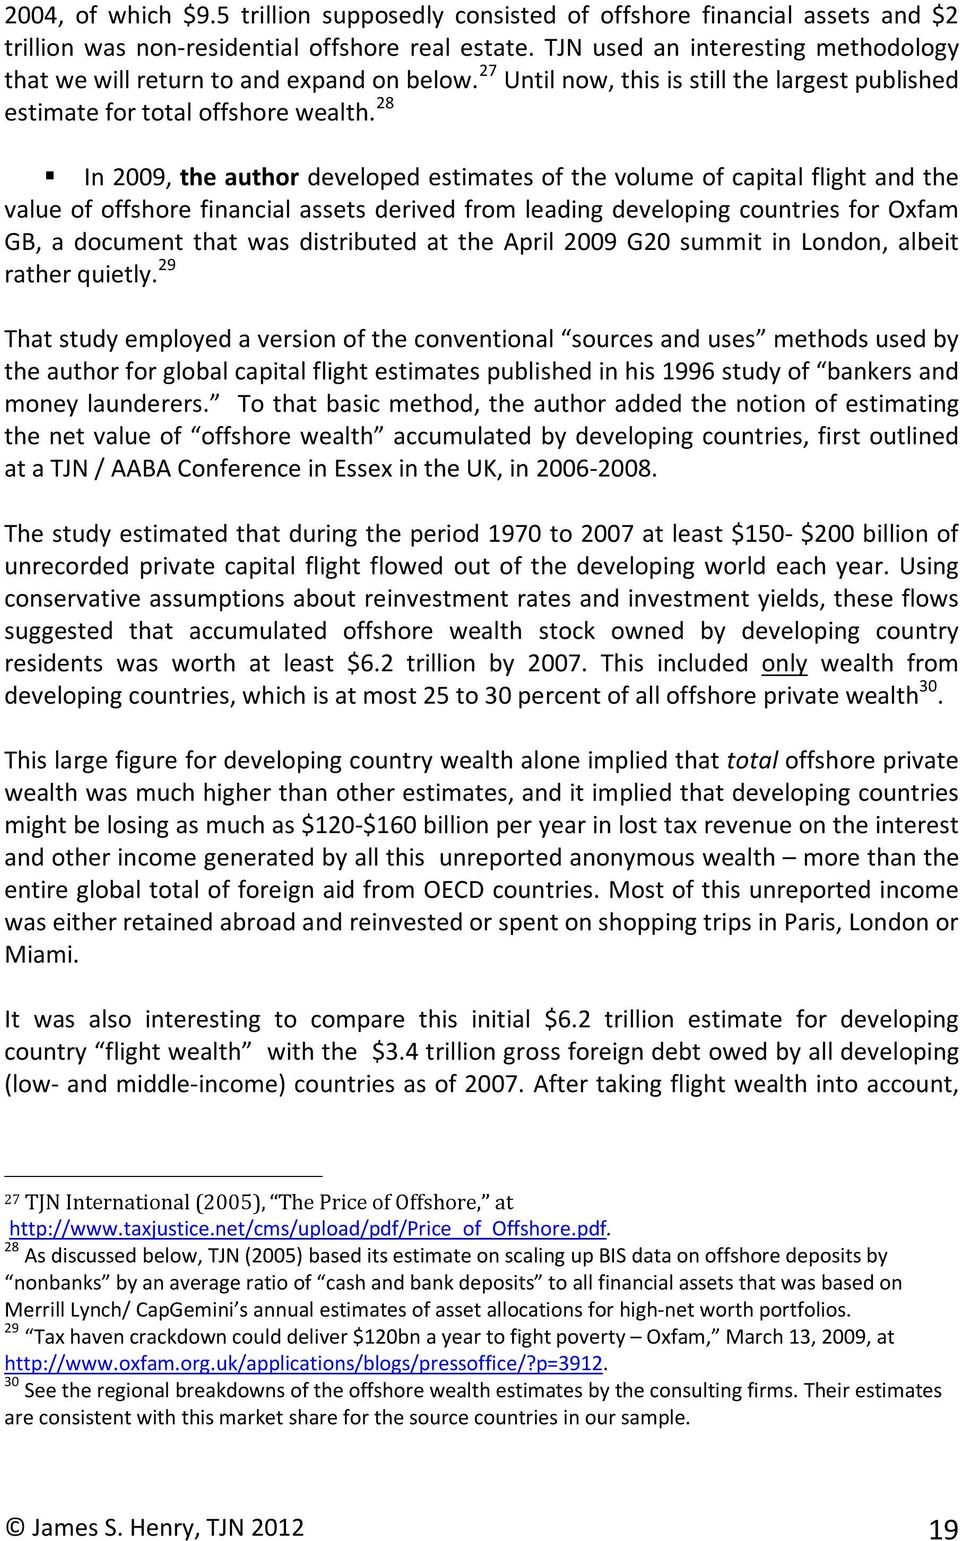 28 In2009,theauthordevelopedestimatesofthevolumeofcapitalflightandthe valueofoffshorefinancialassetsderivedfromleadingdevelopingcountriesforoxfam GB, a document that was distributed at the April 2009